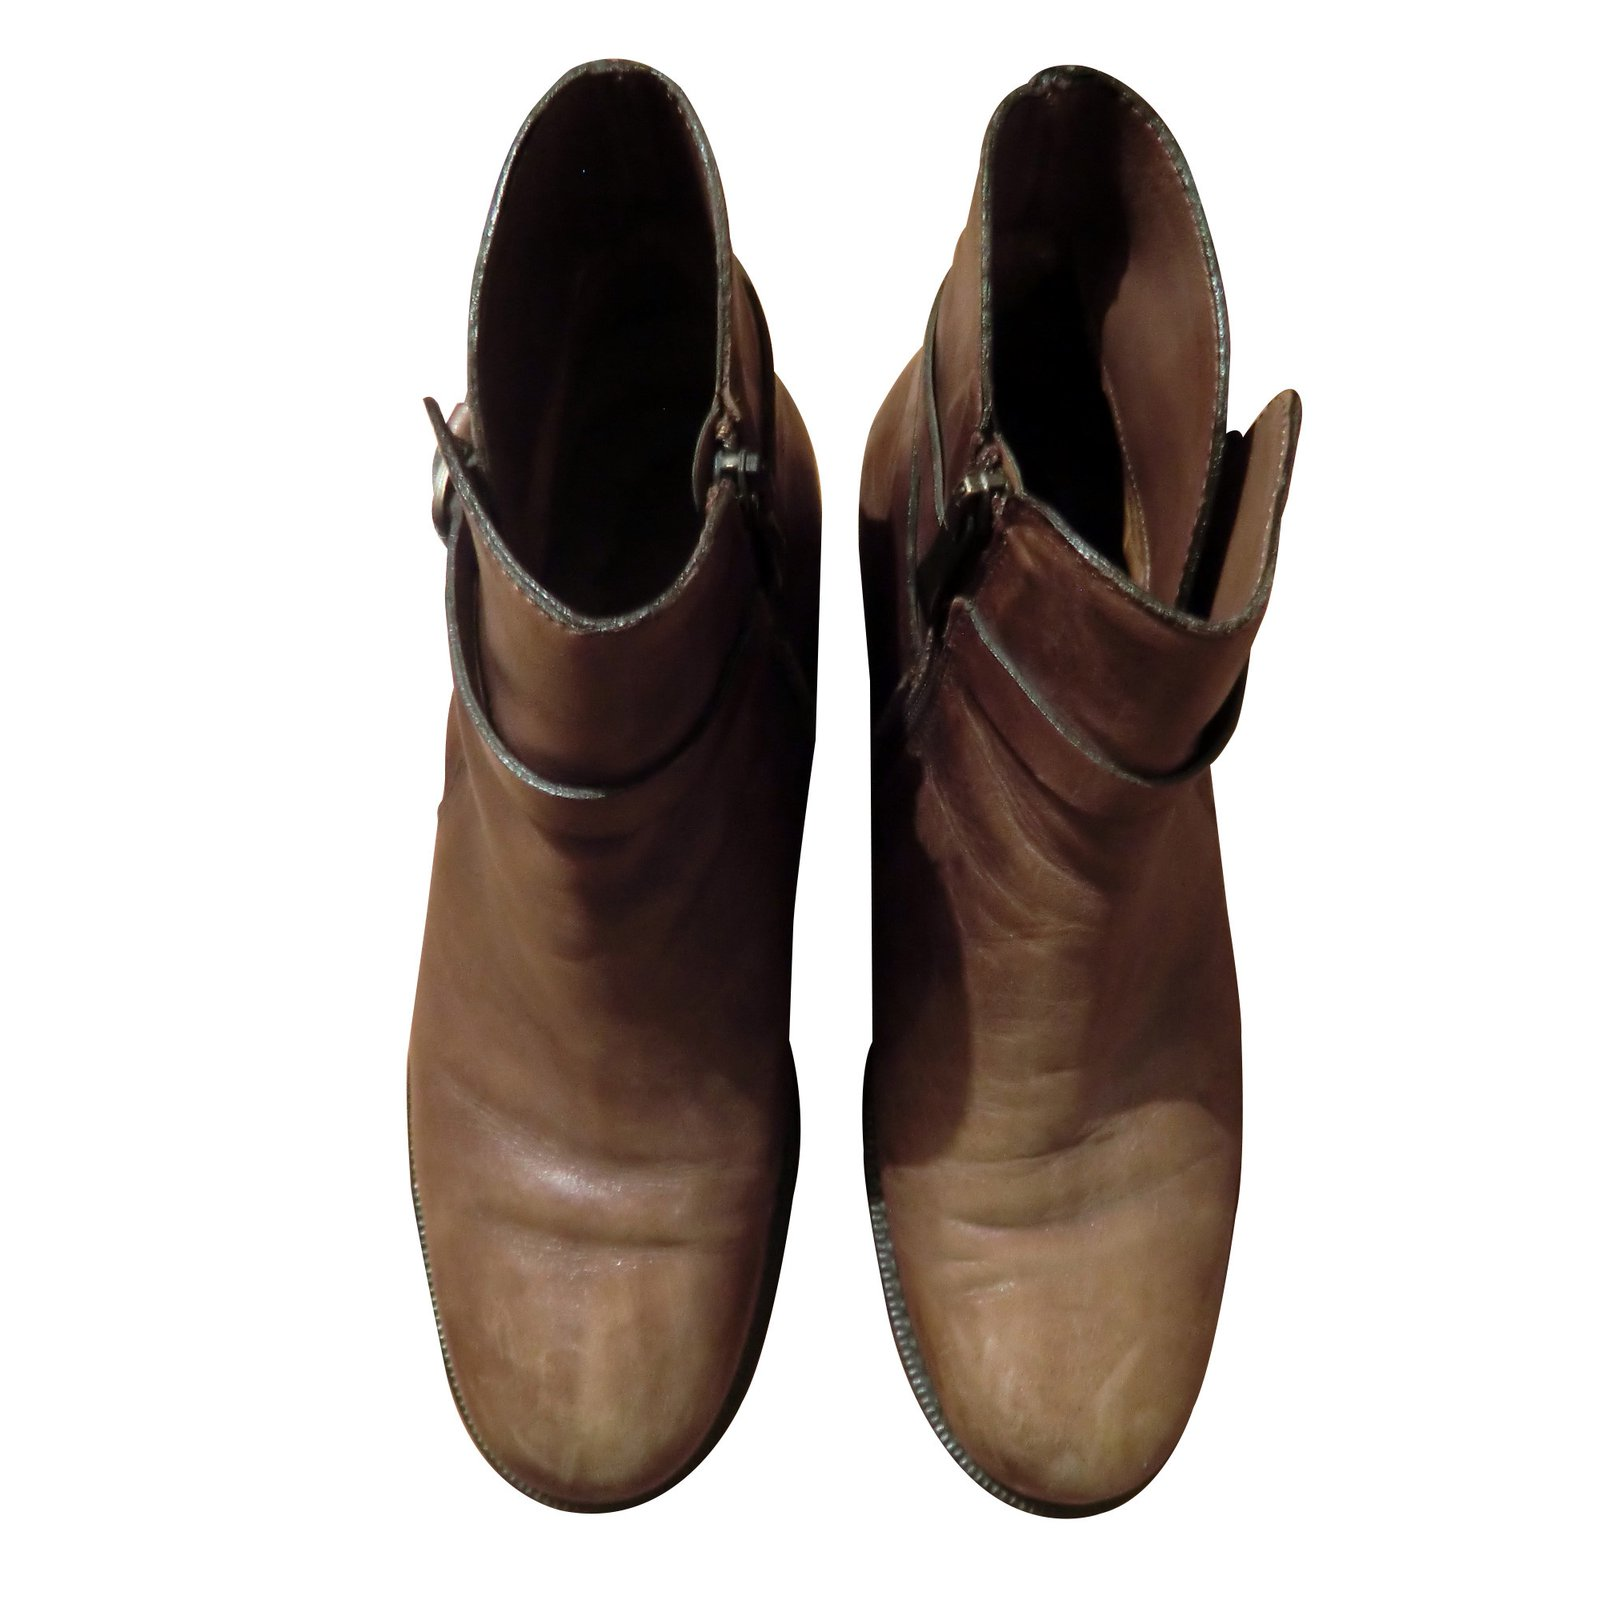 150b7aaa69c927 Vero Cuoio Ankle Boots Ankle Boots Leather Caramel ref.13755 - Joli Closet